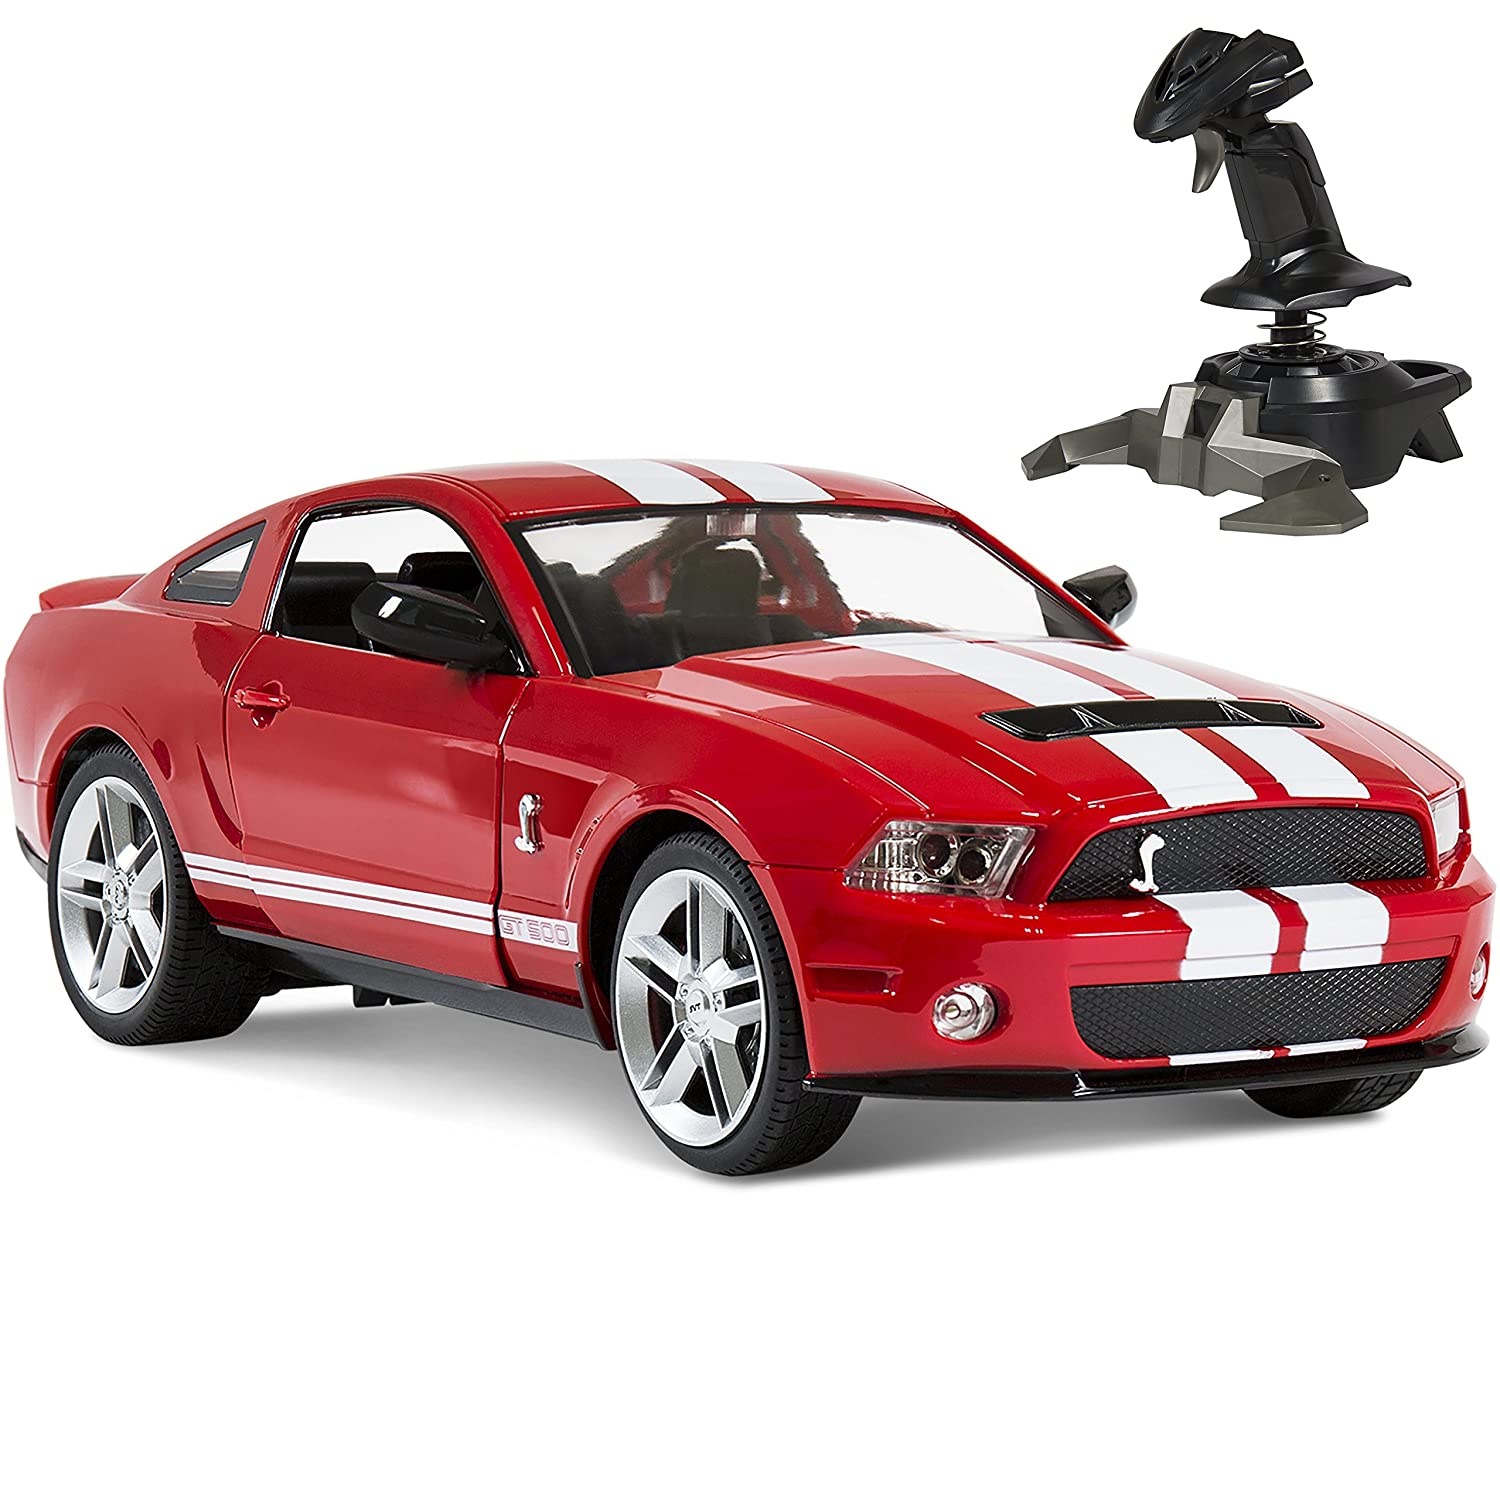 Ford Mustang Gt500 Remote Control Car